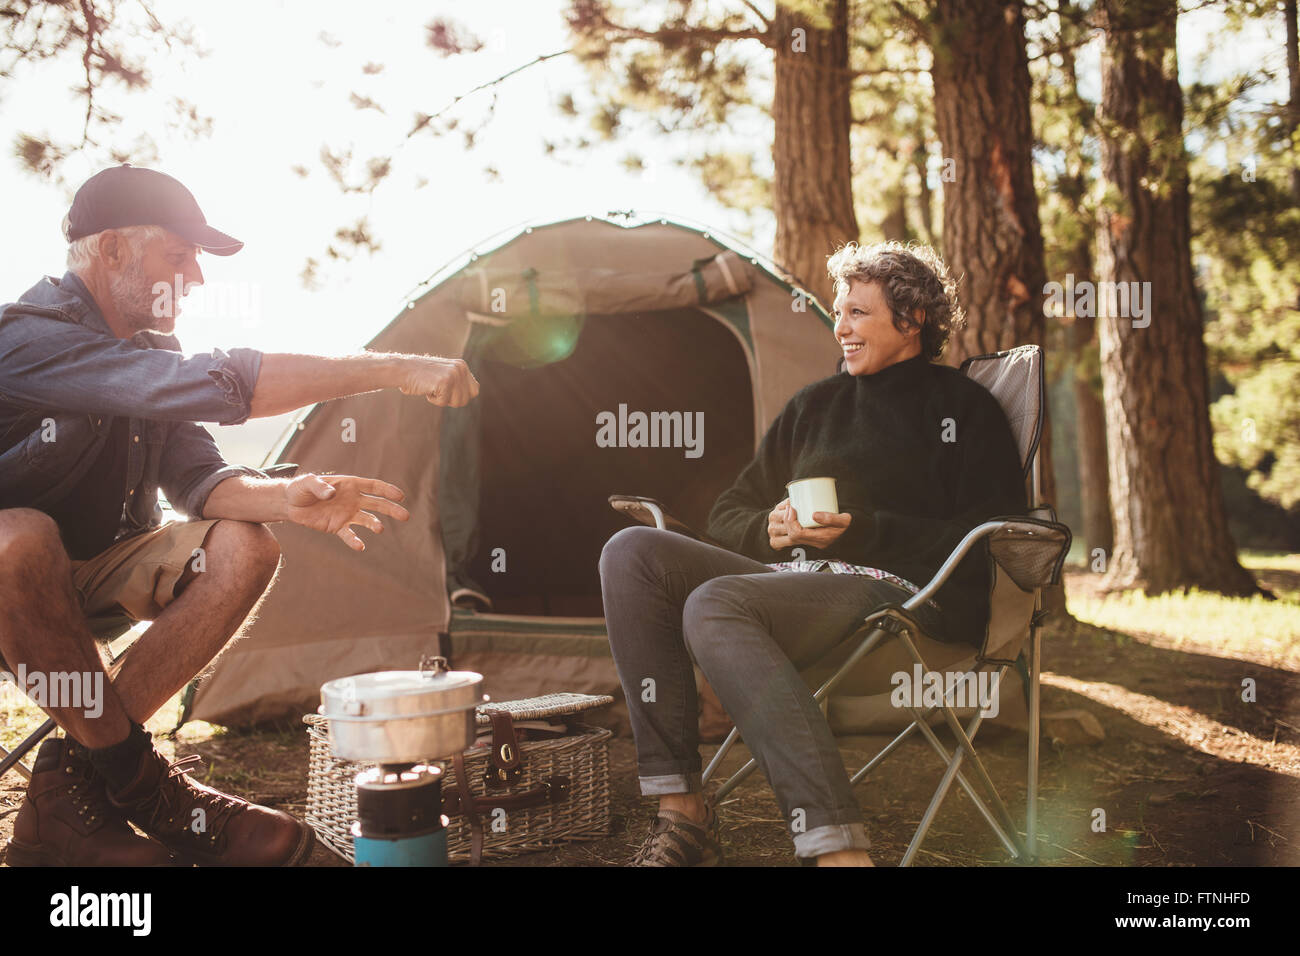 Portrait of senior campers having a good time during a camping trip on a summer day. Smiling mature couple sitting - Stock Image